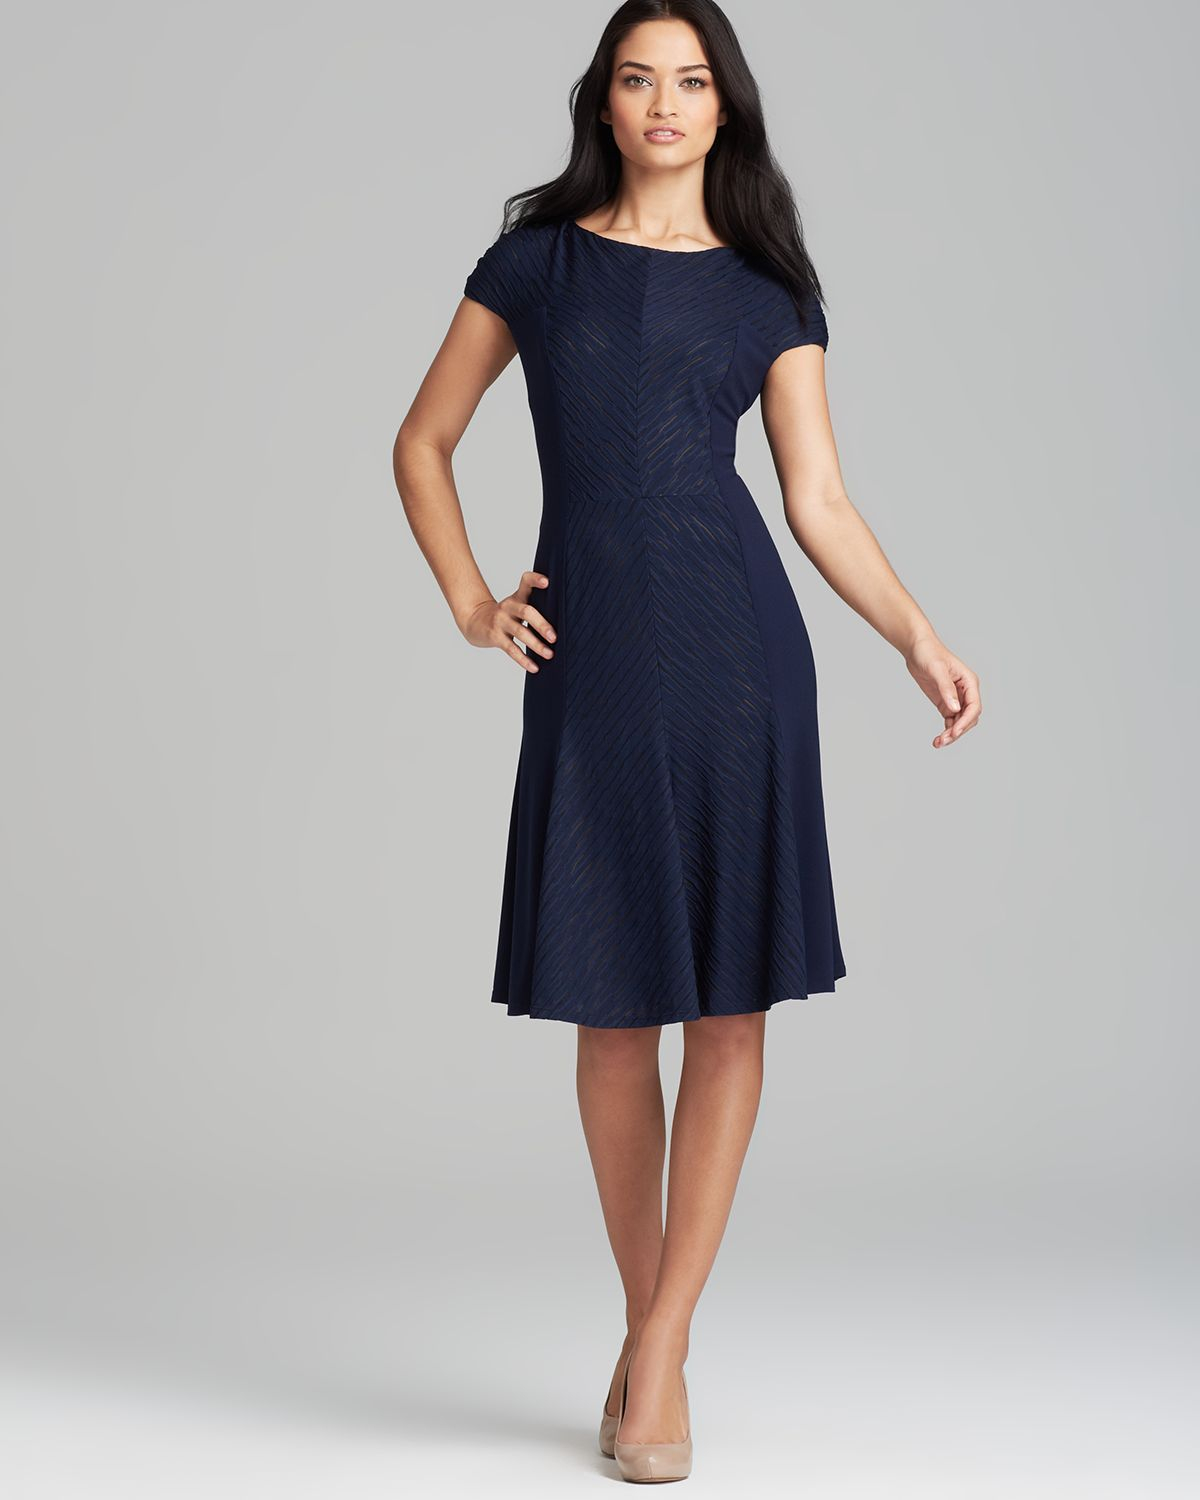 Anne Klein Dress Cap Sleeve Textured Knit Fit And Flare